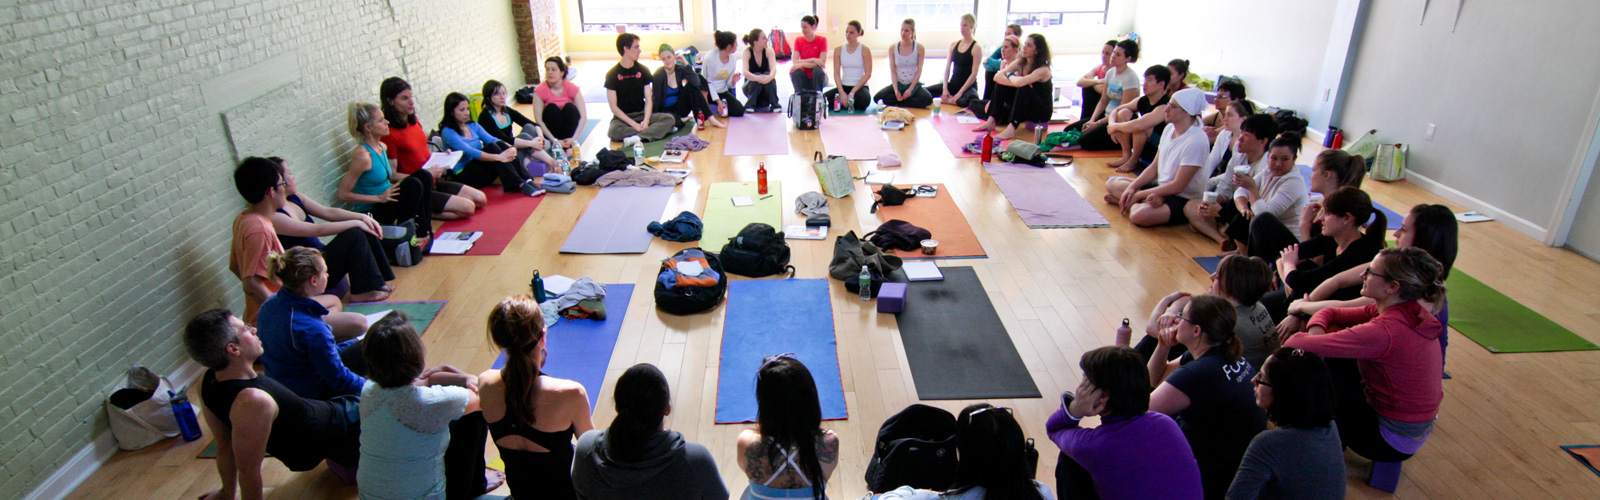 Teacher Training group at Prana Power Yoga